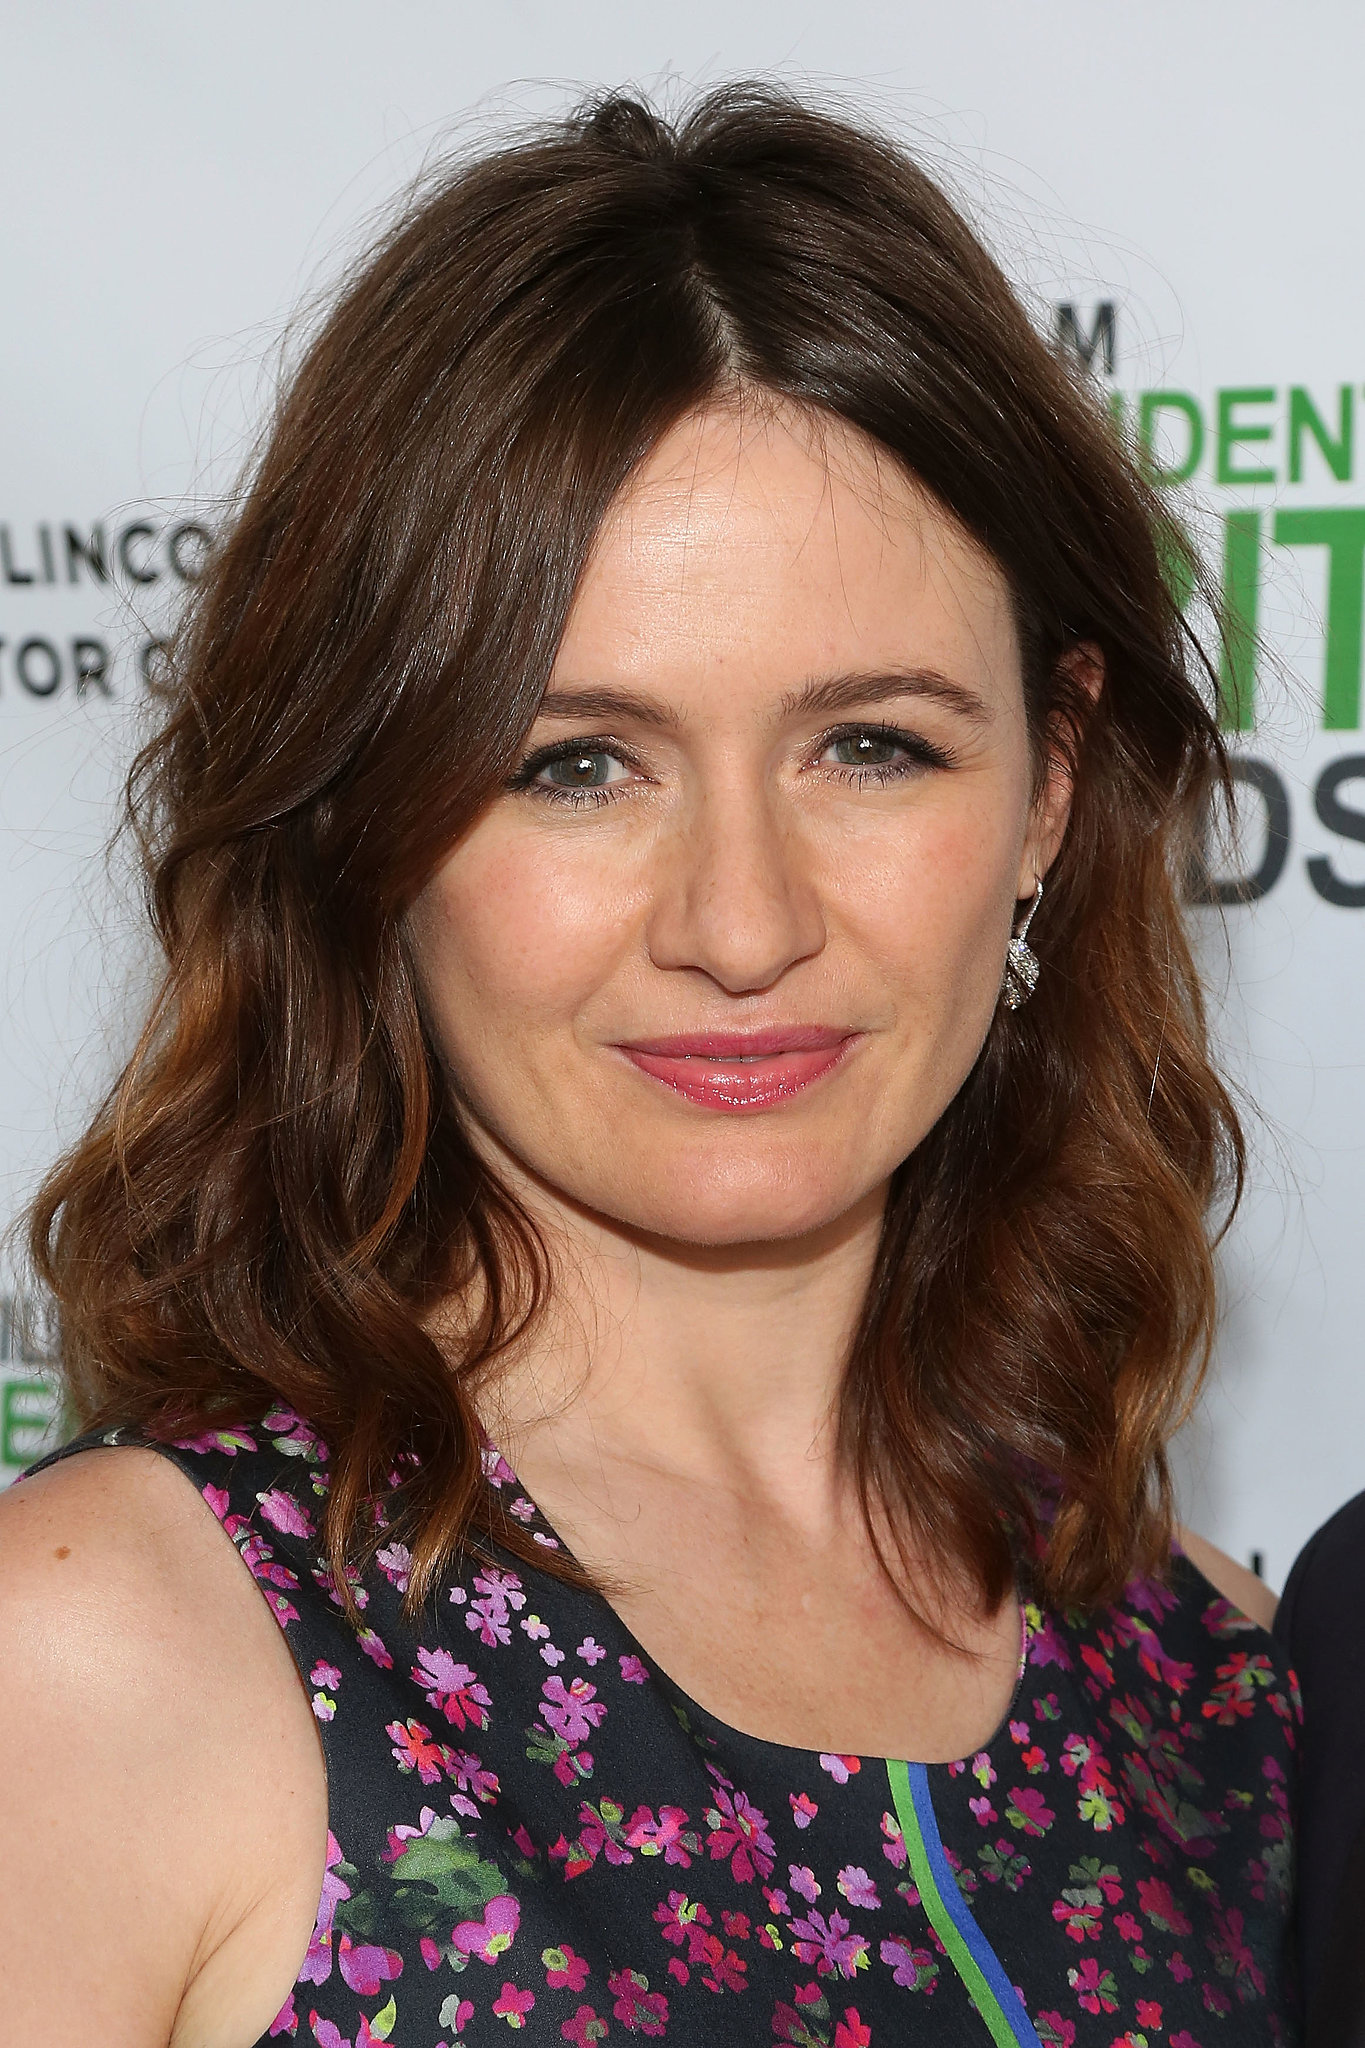 emily mortimer instagramemily mortimer eye, emily mortimer age, emily mortimer film, emily mortimer notting hill, emily mortimer filmleri, emily mortimer wdw, emily mortimer fansite, emily mortimer bruce willis, emily mortimer speaking russian, emily mortimer instagram, emily mortimer ewan mcgregor film, emily mortimer vanity fair, emily mortimer, emily mortimer imdb, emily mortimer husband, emily mortimer wiki, emily mortimer and alessandro nivola, emily mortimer twitter, emily mortimer newsroom, emily mortimer actress